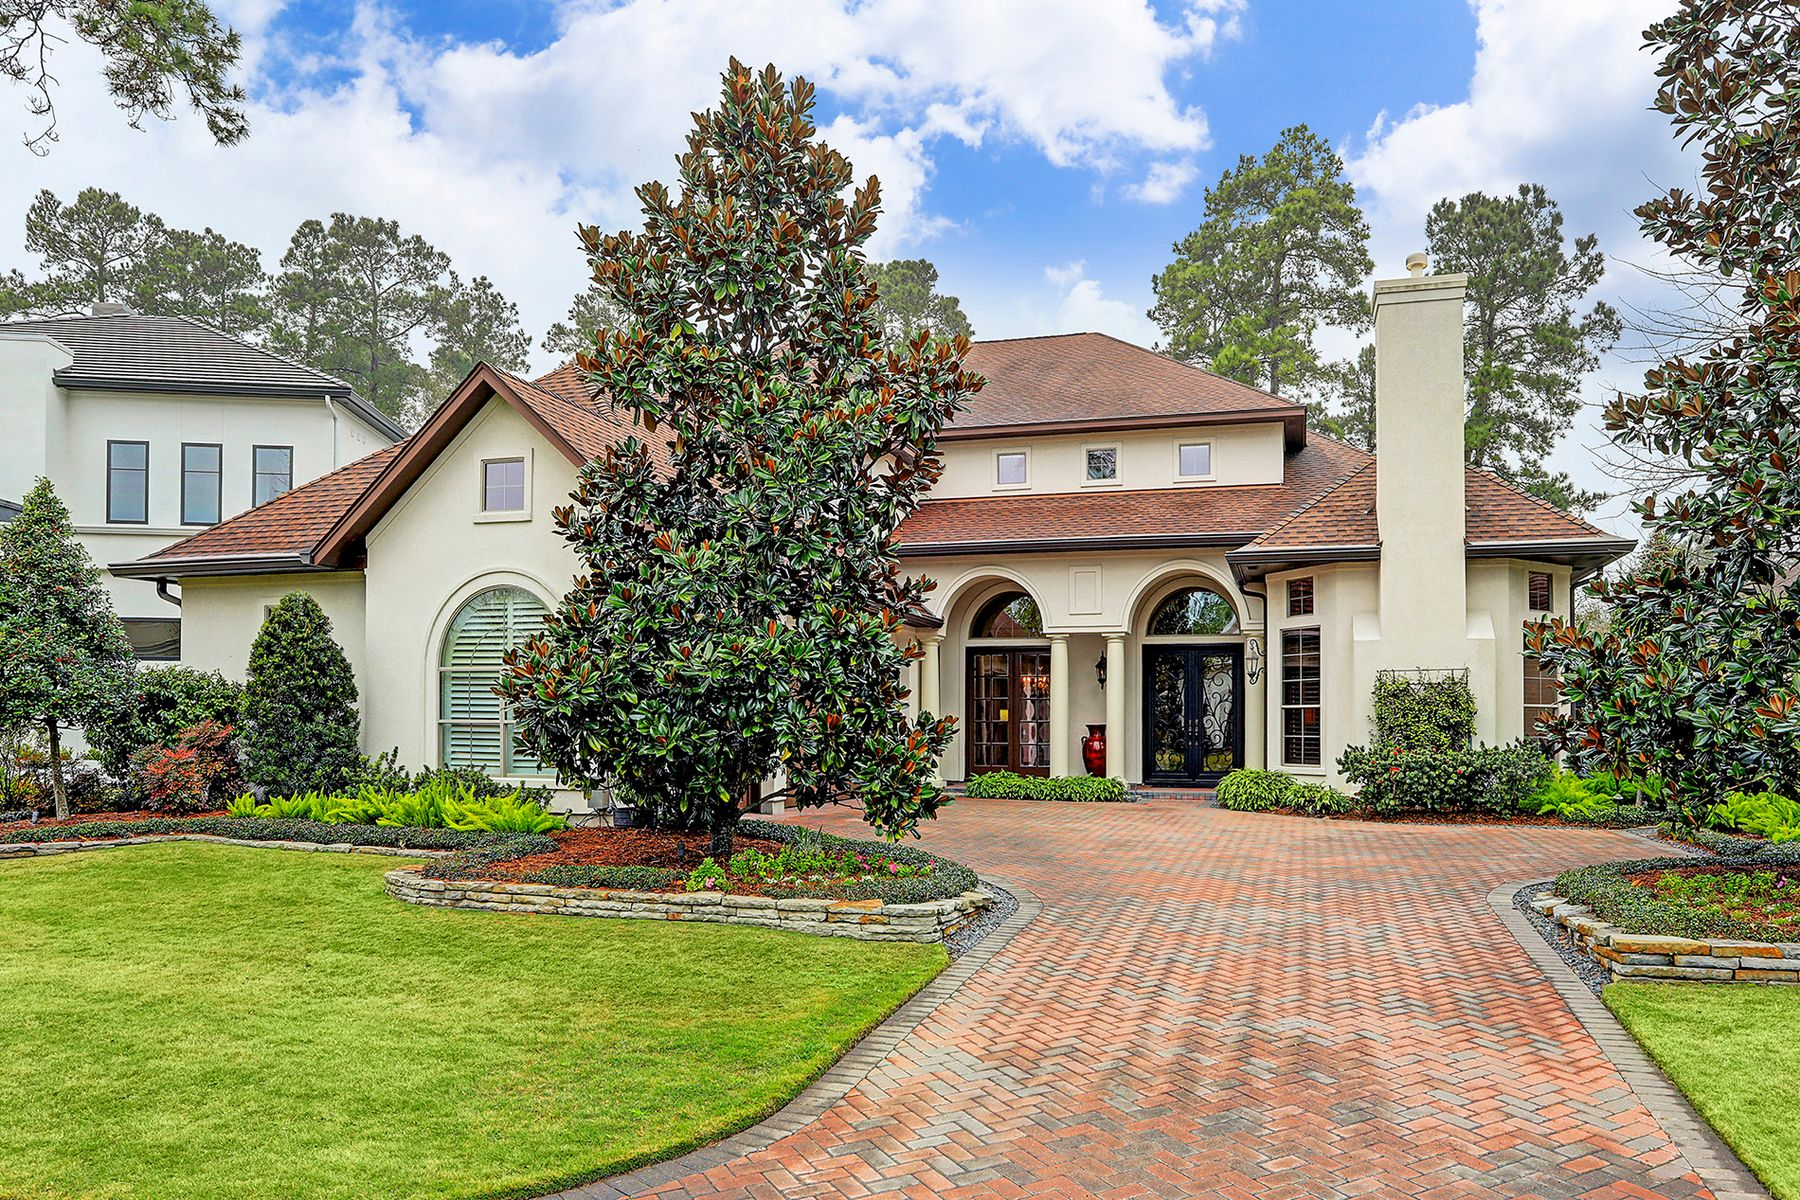 Single Family Homes for Sale at 71 Golden Scroll Circle The Woodlands, Texas 77382 United States